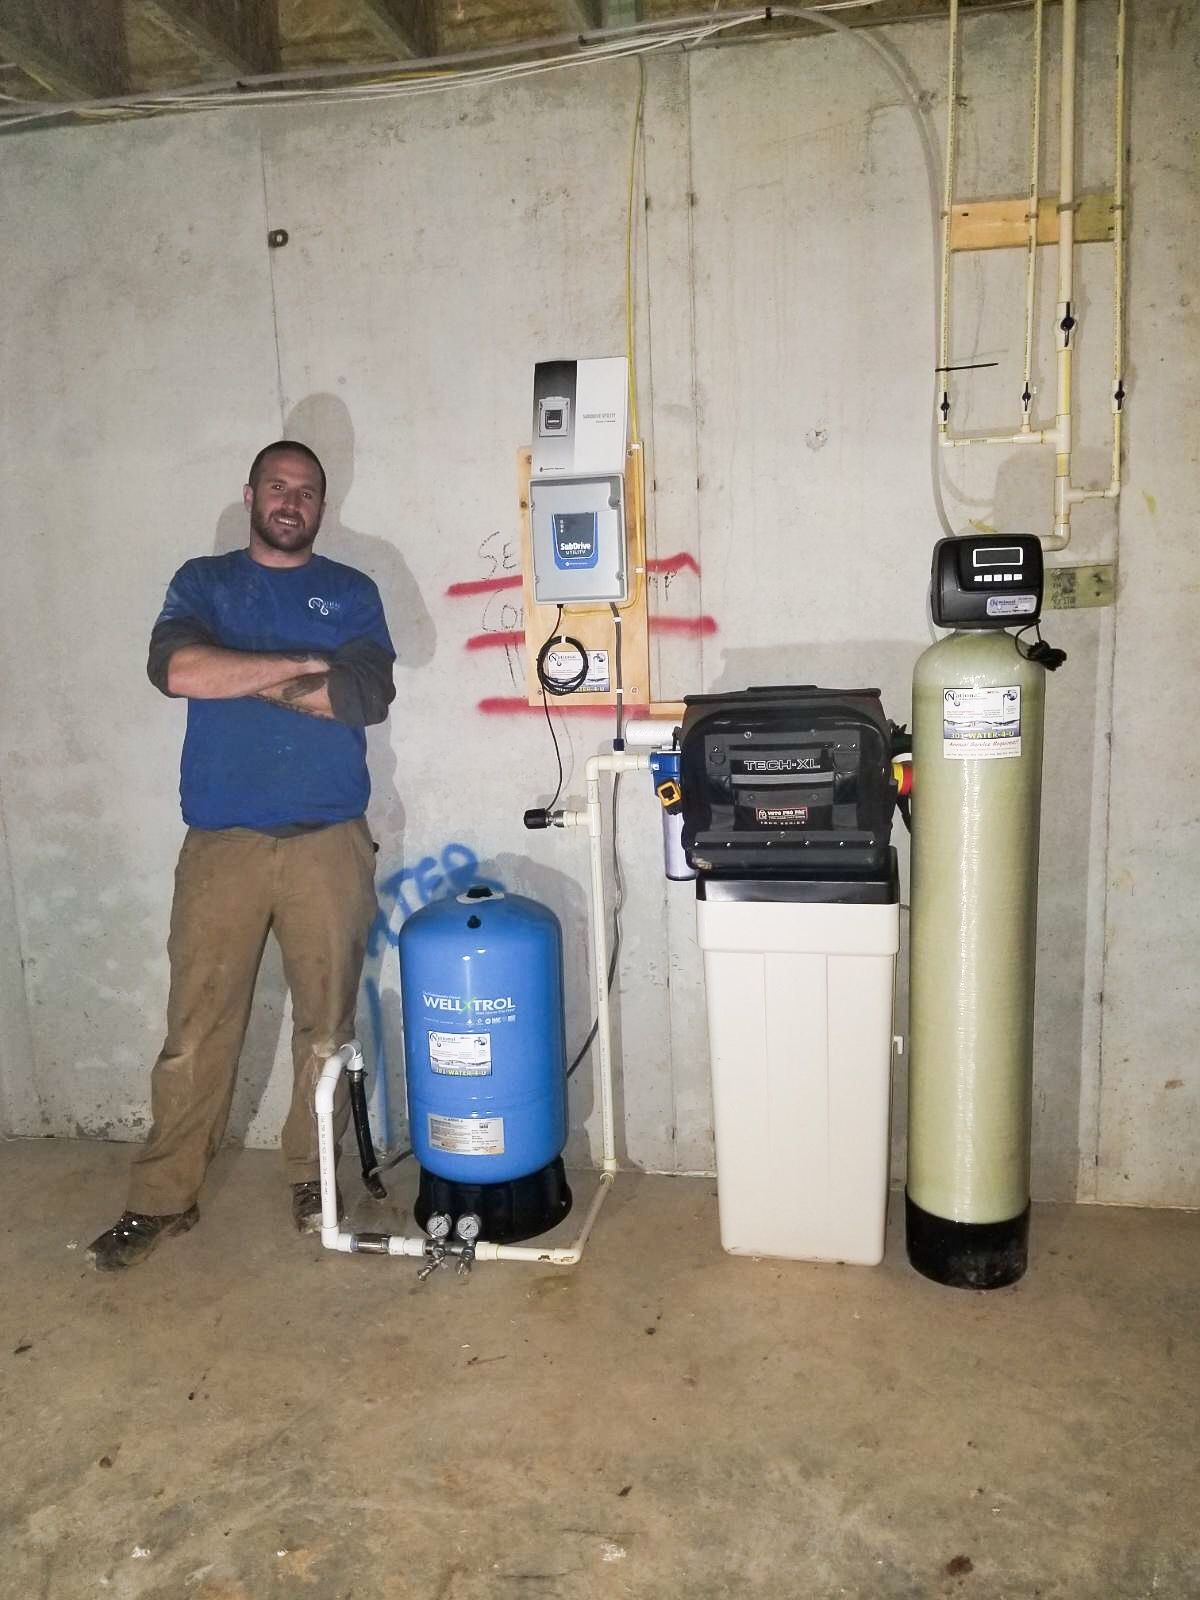 New Installation Of A Pressure Tank Water Softener Subdrive Pump